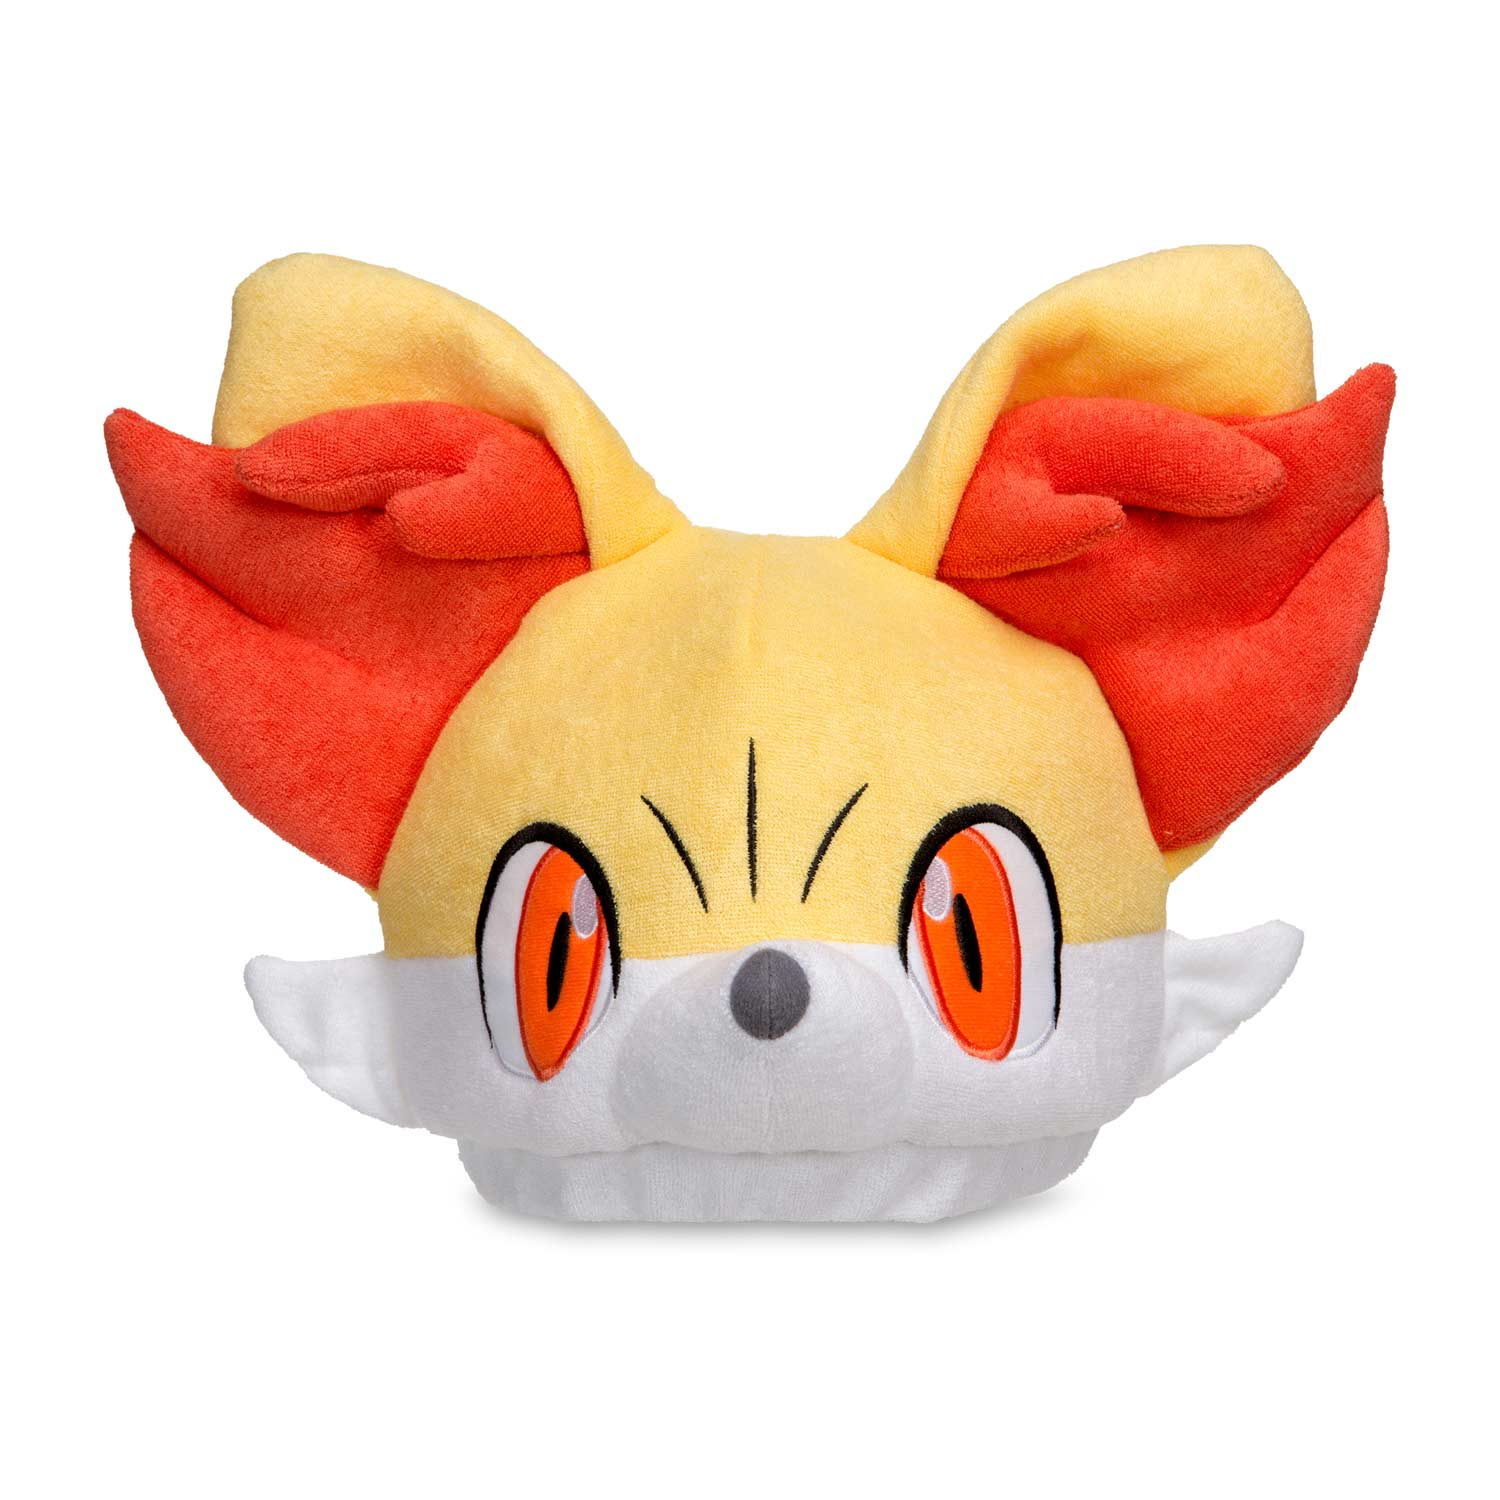 image for fennekin pok plush hat from pokemon center _5_3074457345618259663_3074457345618262055_3074457345618268804